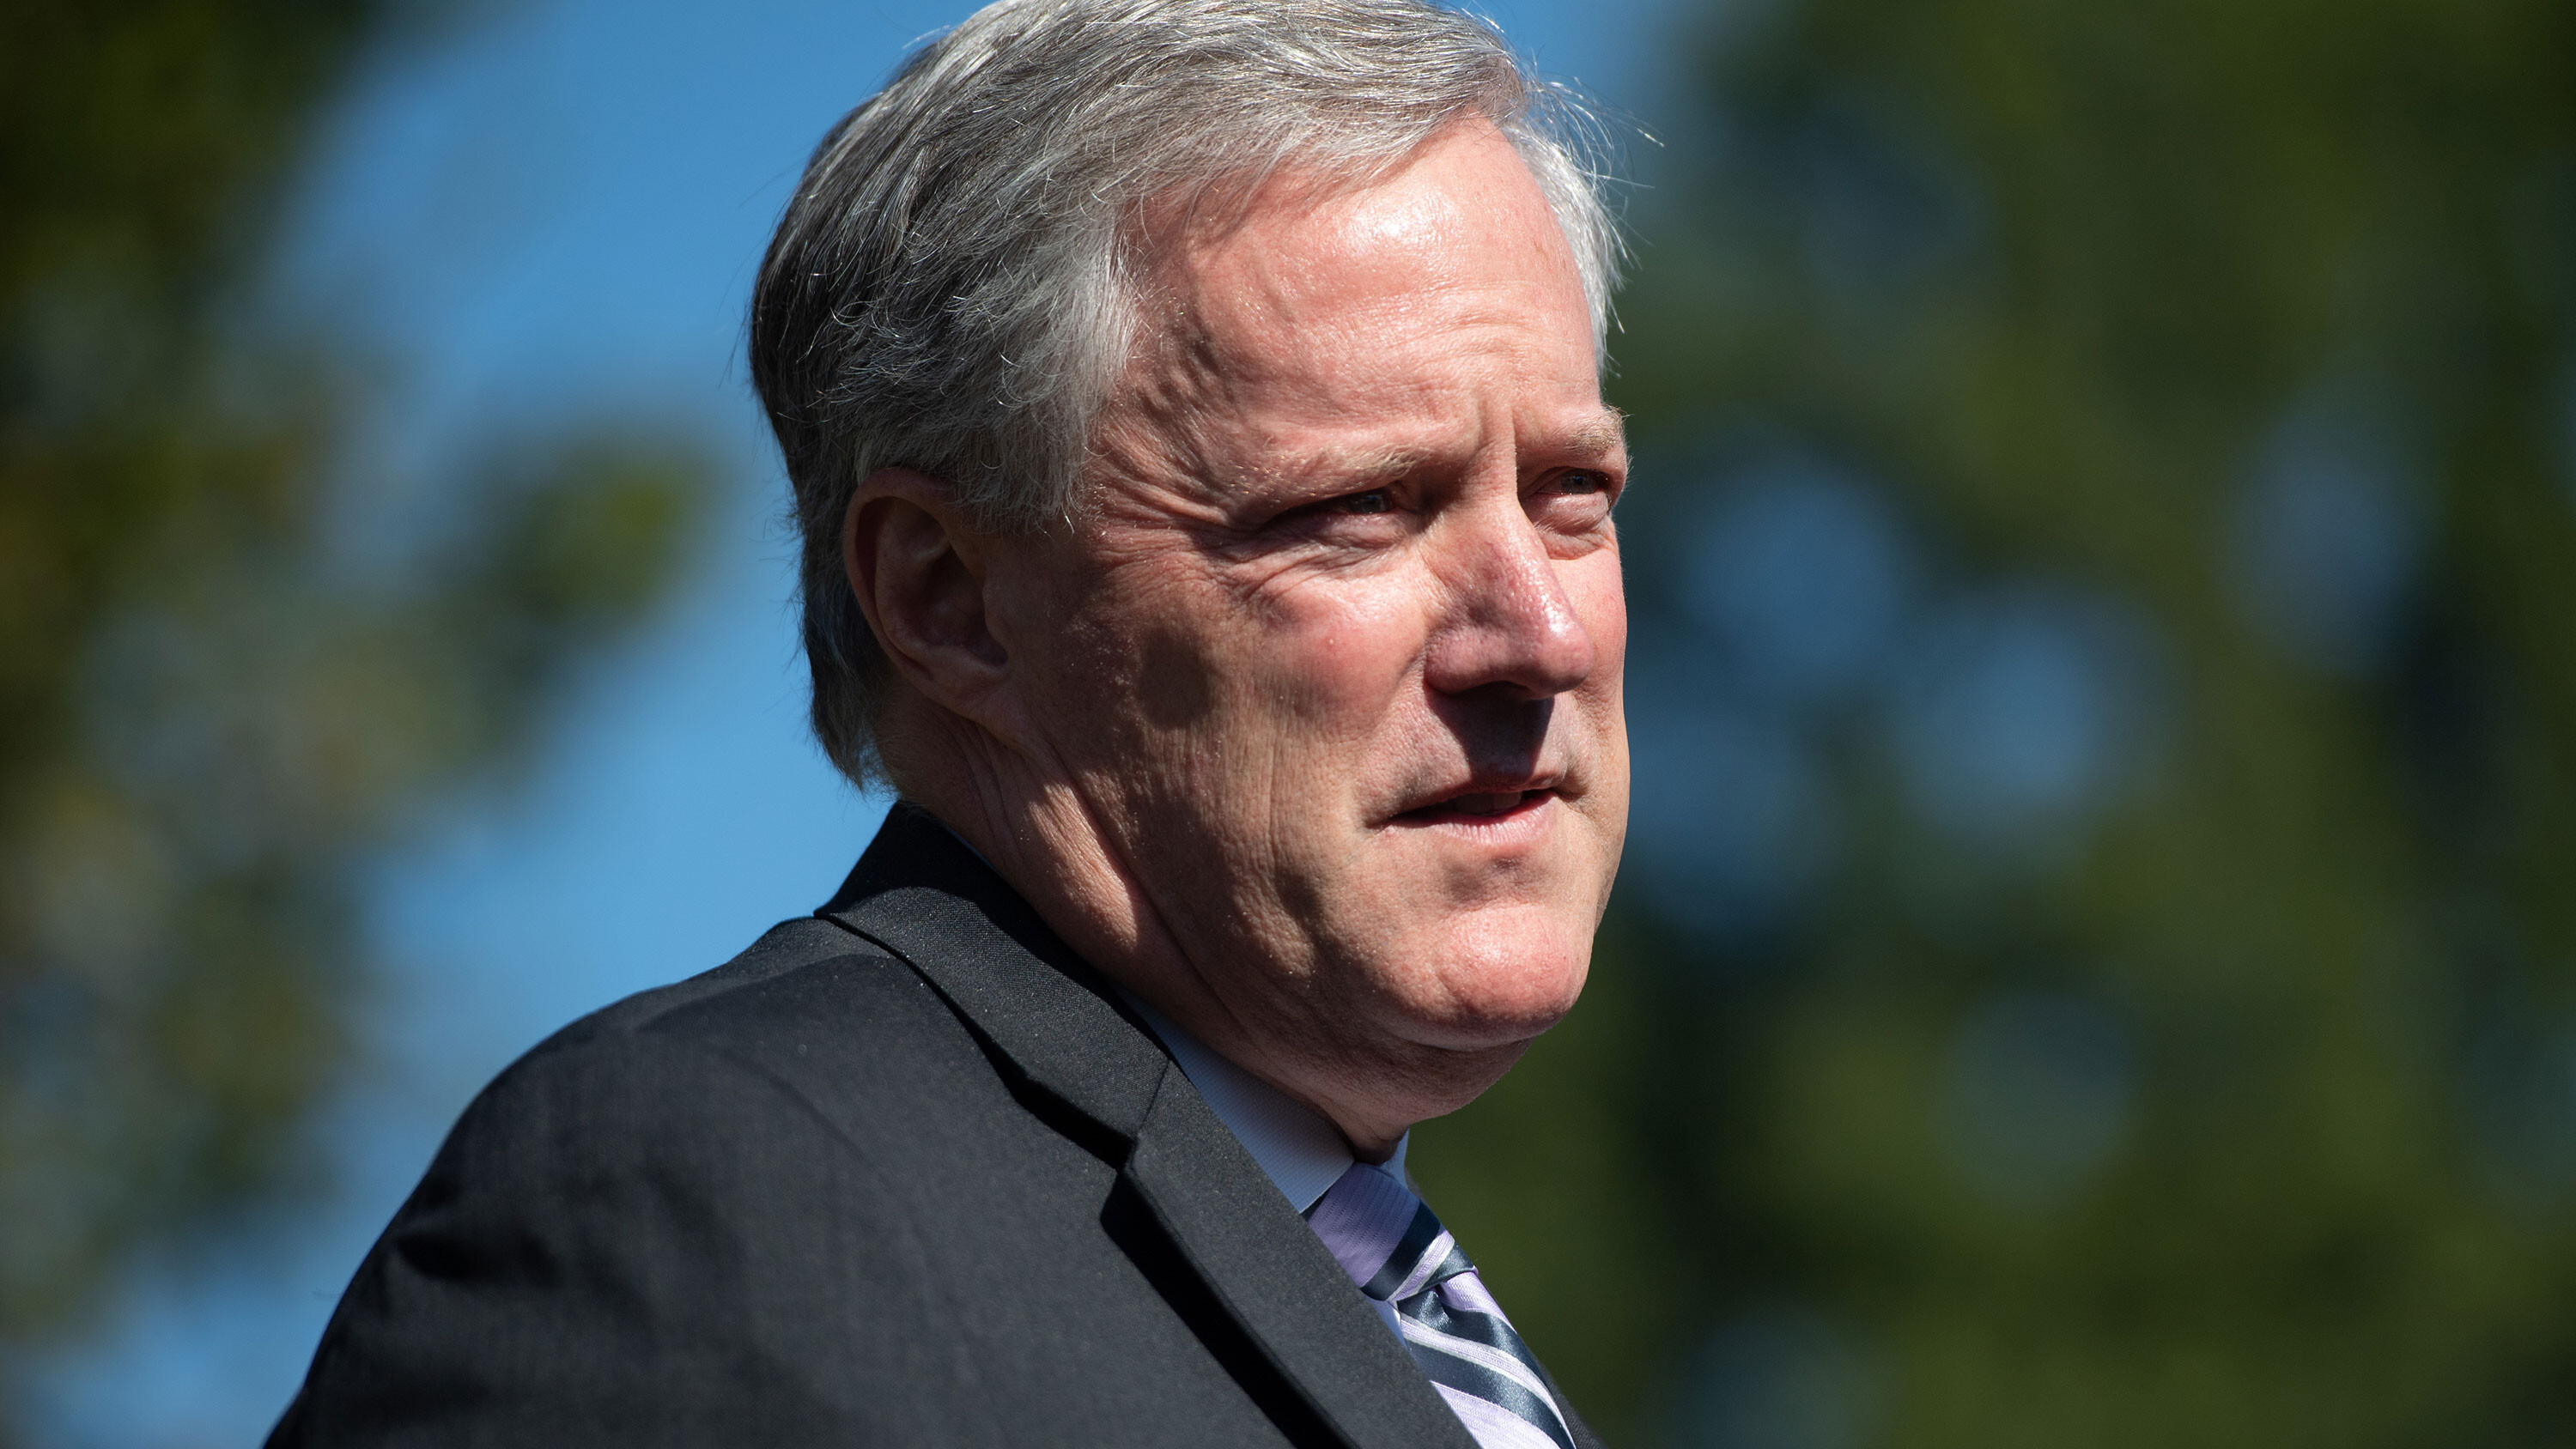 January 6 committee is losing patience with Trump's former chief of staff Mark Meadows as it seeks his testimony